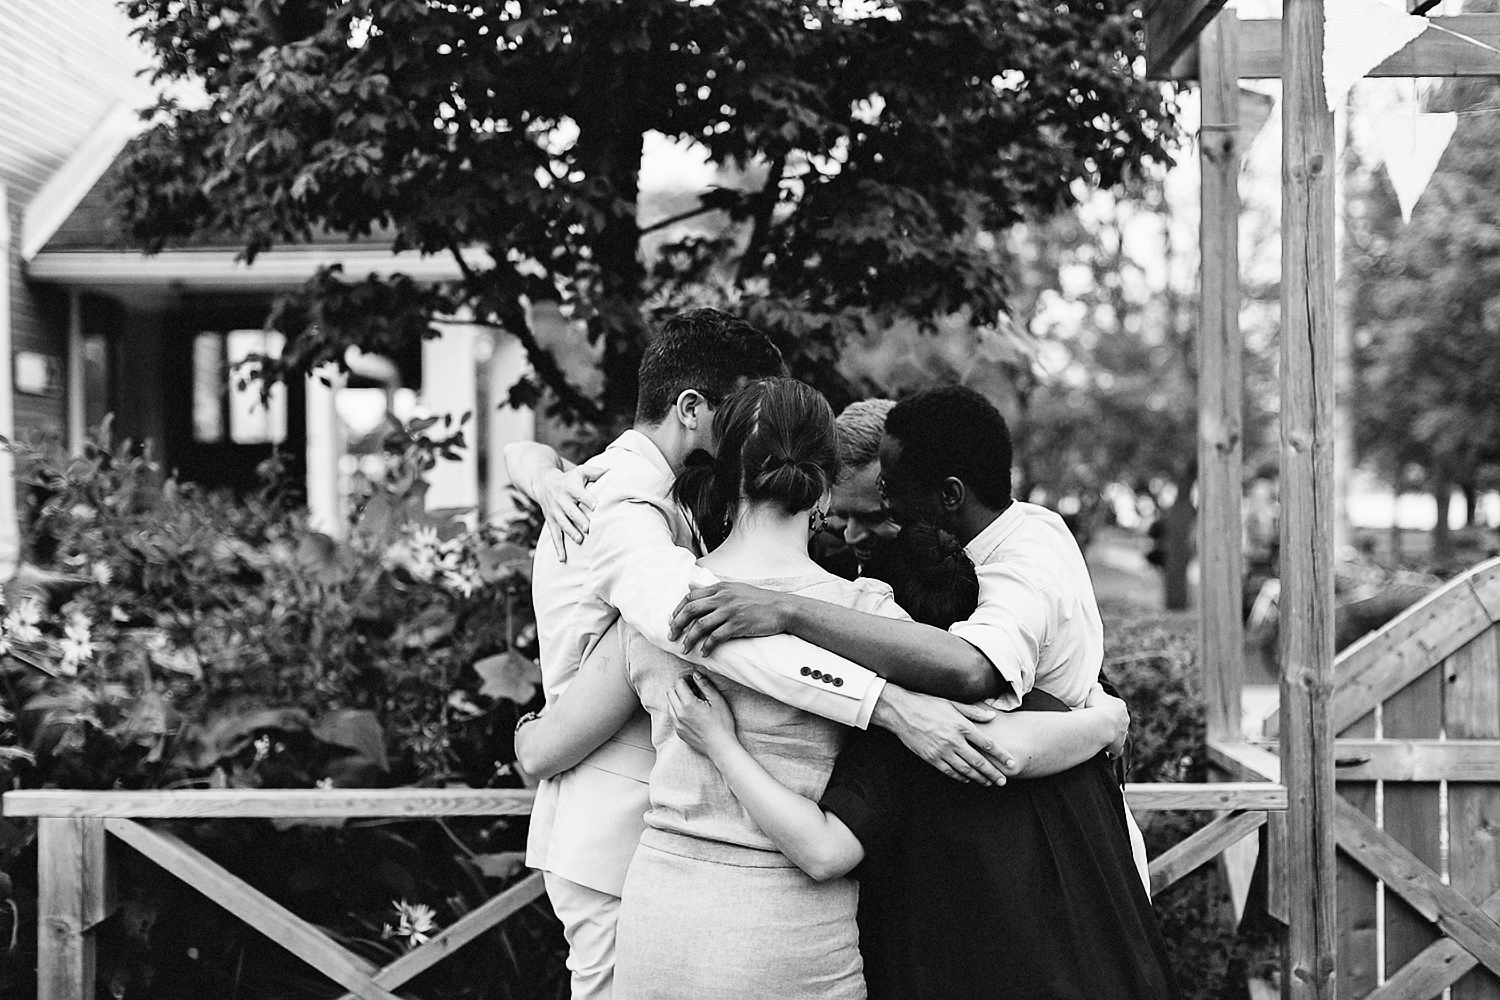 Best-Wedding-Photographers-Toronto-with-documentary-style-photojournalistic-wedding-photographer-editorial-cool-hip-timeless-Intimate-Toronto-Island-Cafe-Clubhouse-Wedding-groom-and-friends-hug.jpg